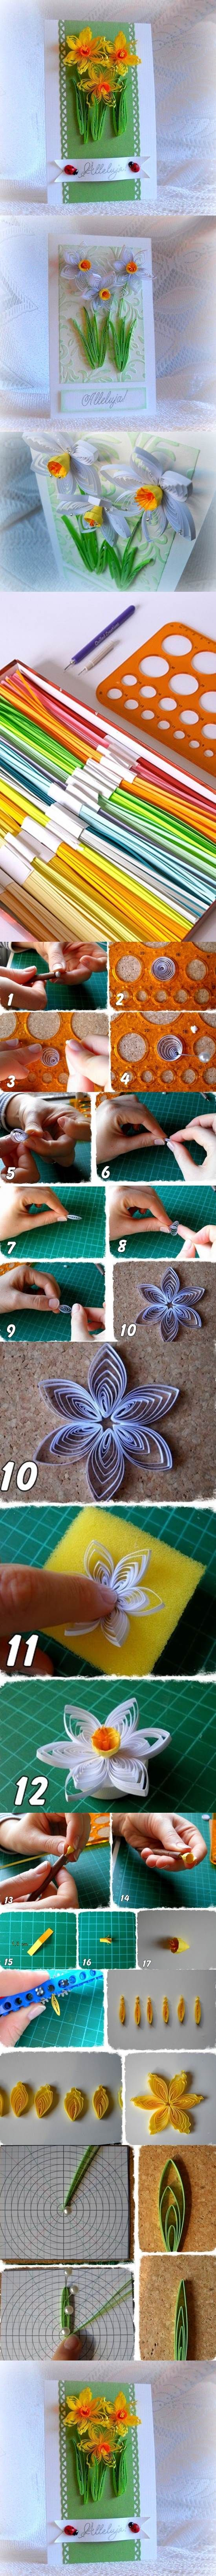 DIY Beautiful Quilling Daffodils Greeting Card | iCreativeIdeas.com LIKE Us on Facebook == https://www.facebook.com/icreativeideas